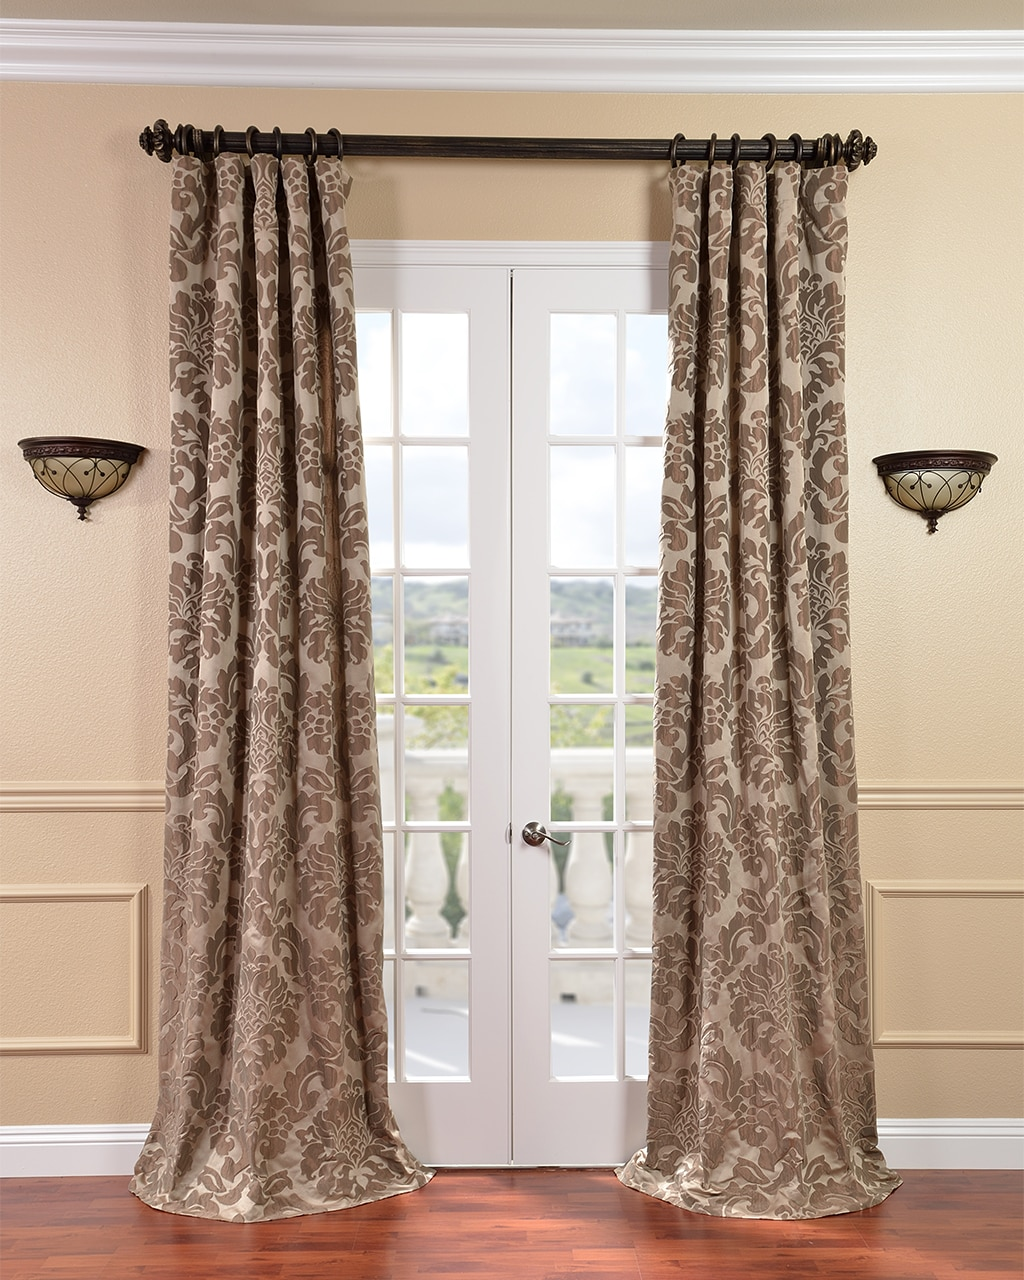 Jacquard Curtains Overstock Online Shopping Bedding Furniture Electronics Jewelry Clothing More